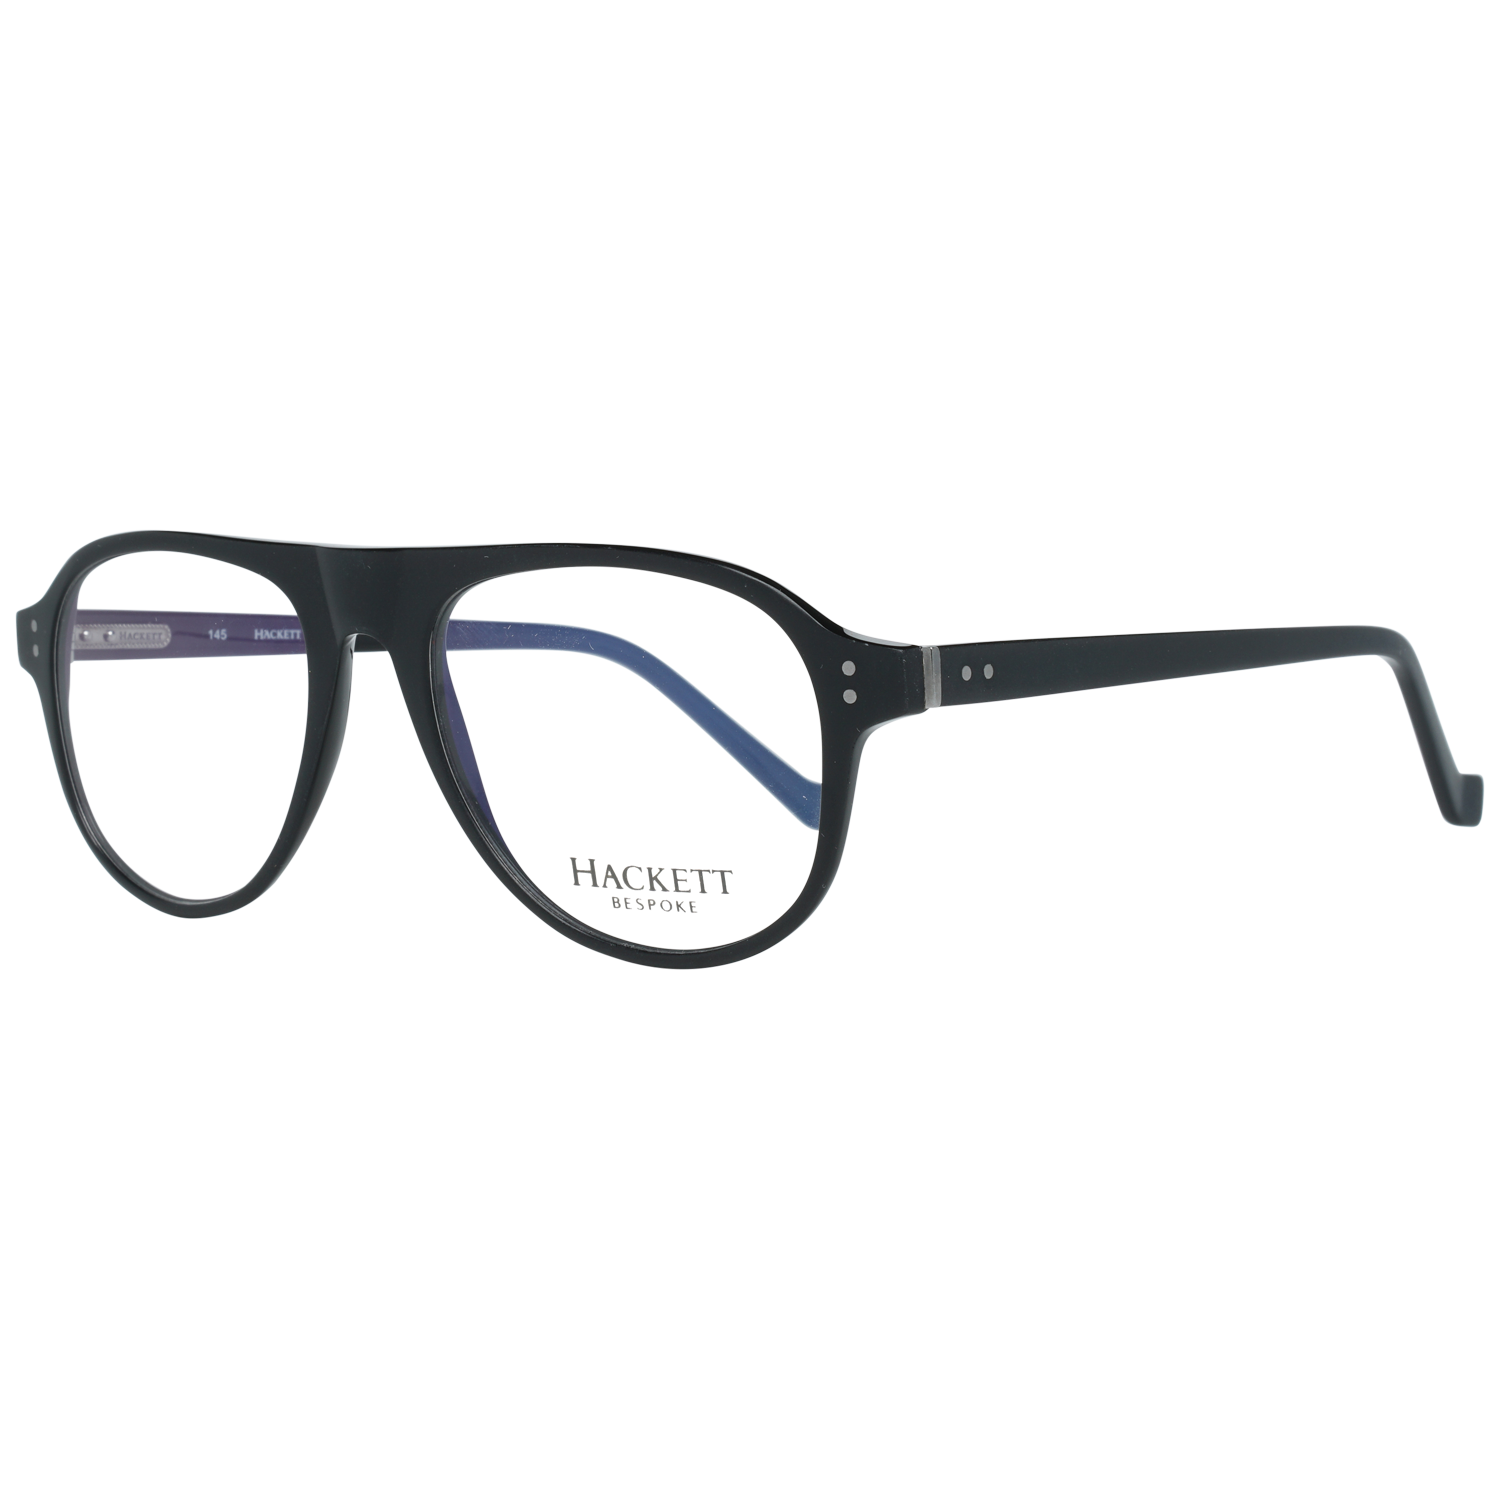 Hackett Bespoke Optical Frame HEB203 002 52 Black